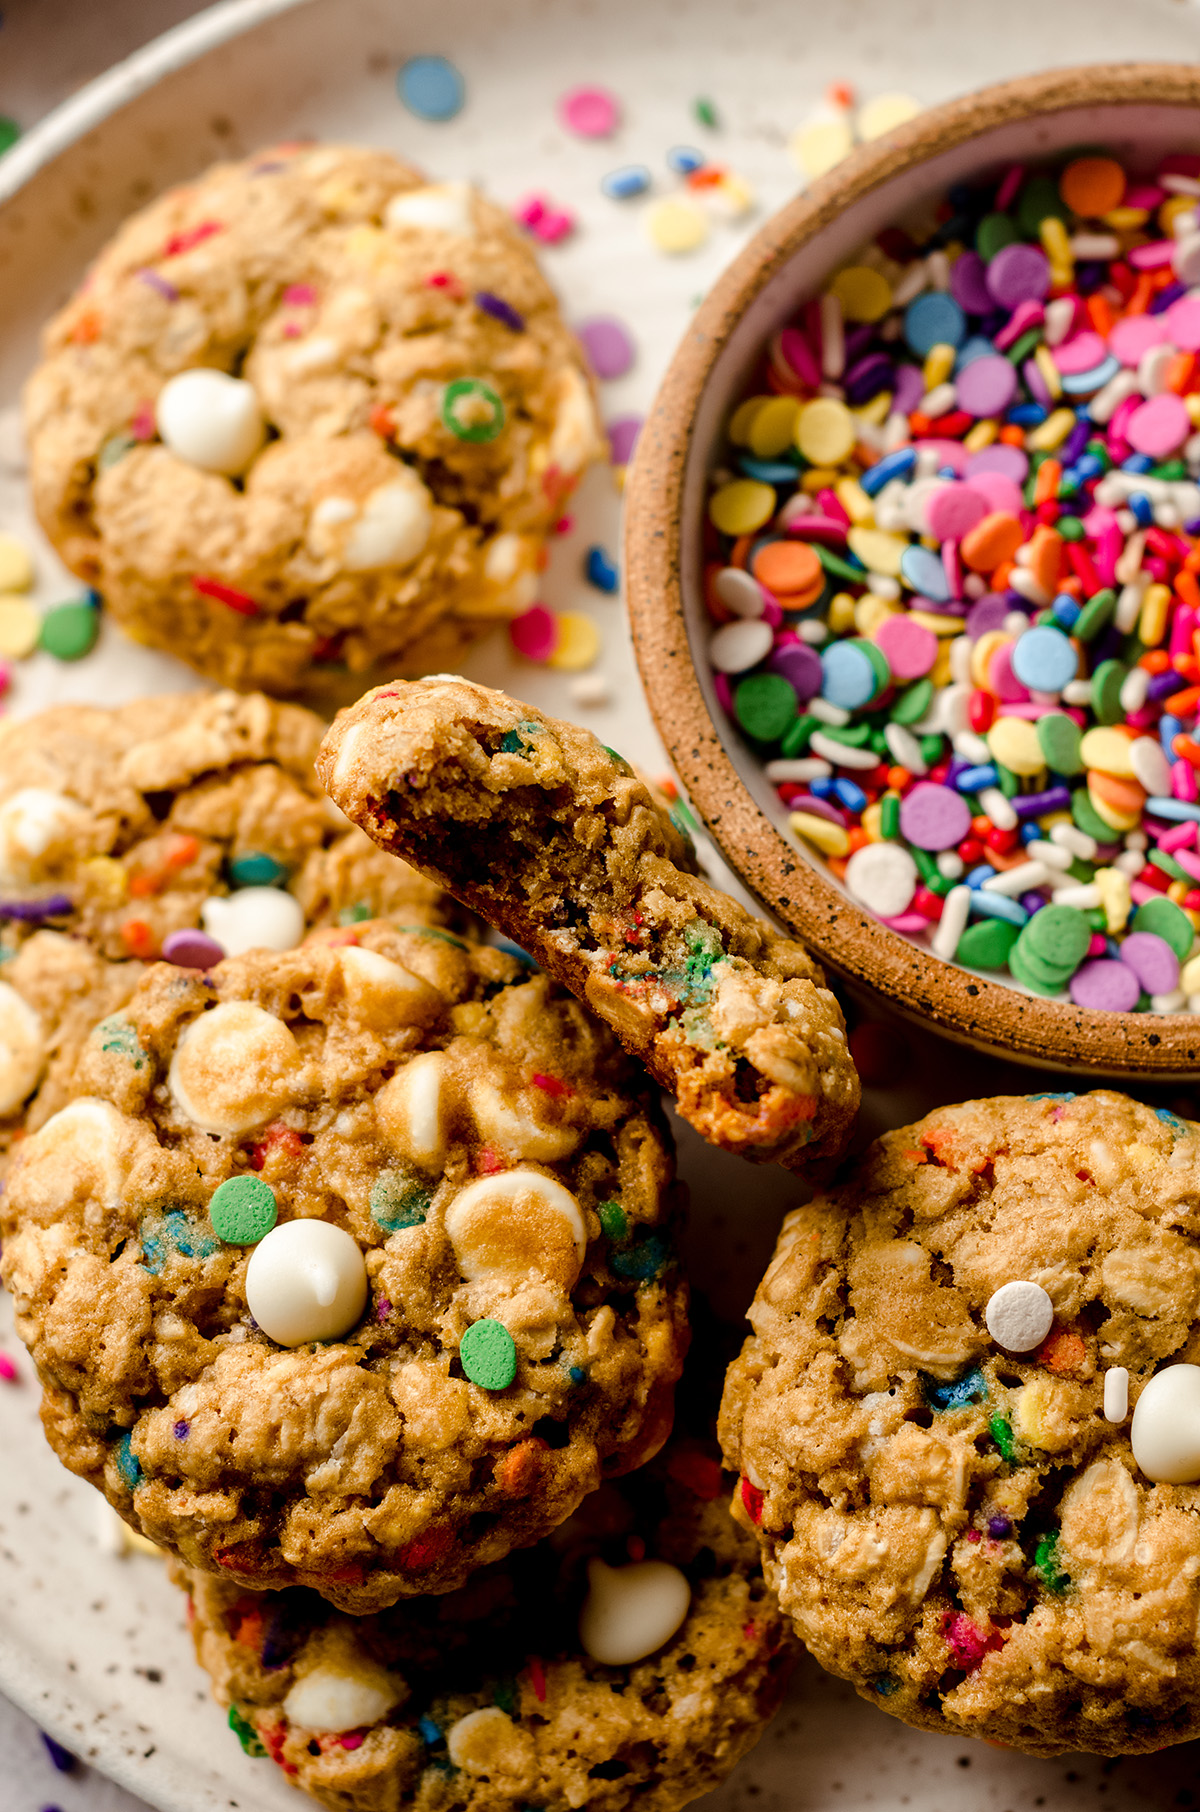 funfetti oatmeal cookies on a plate with a bowl of sprinkles and one cookie has a bite taken out of it